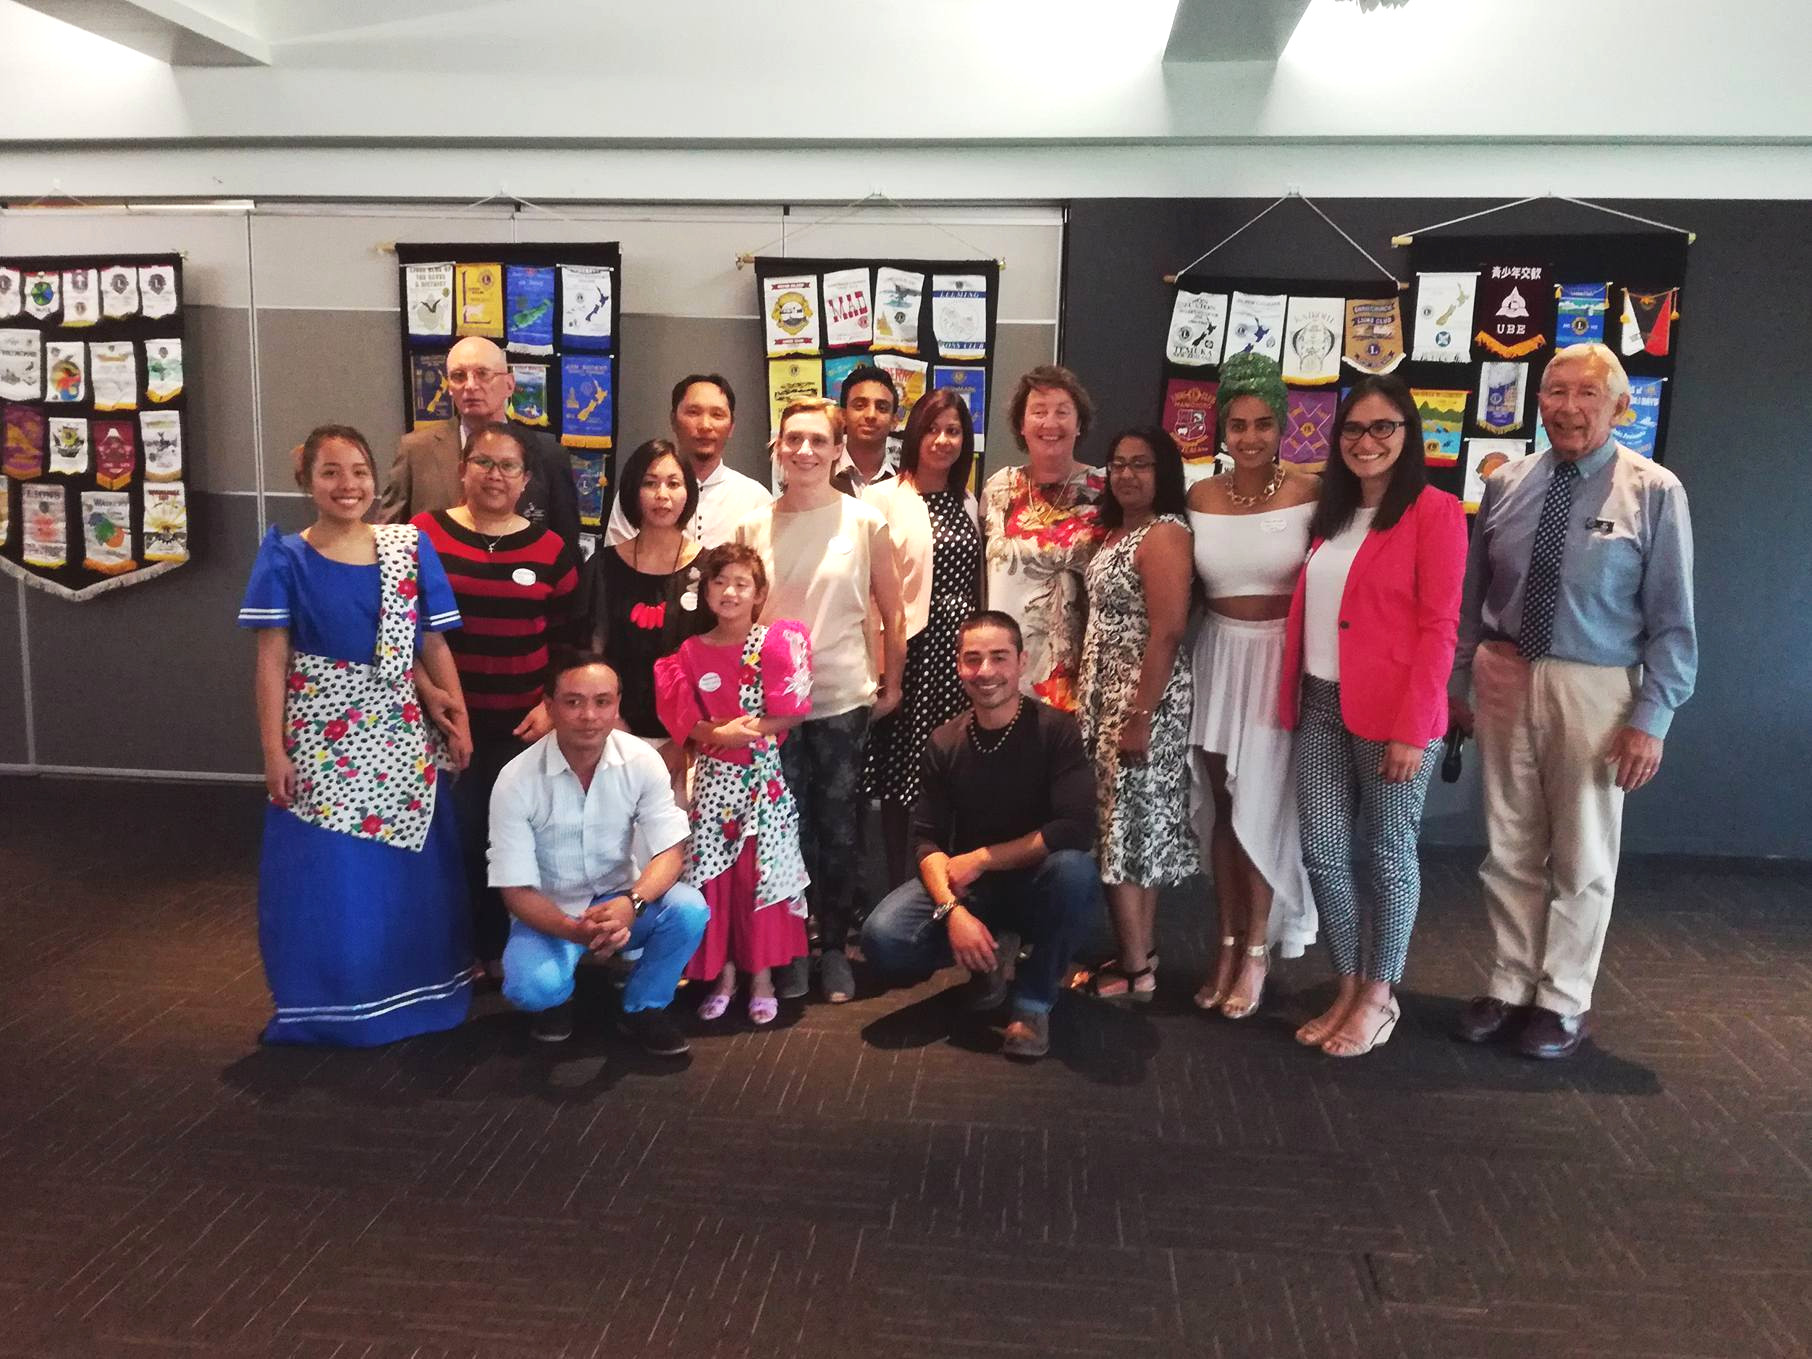 A panel of speakers from different countries at a Multicultural Evening organized by the Ashburton Lions